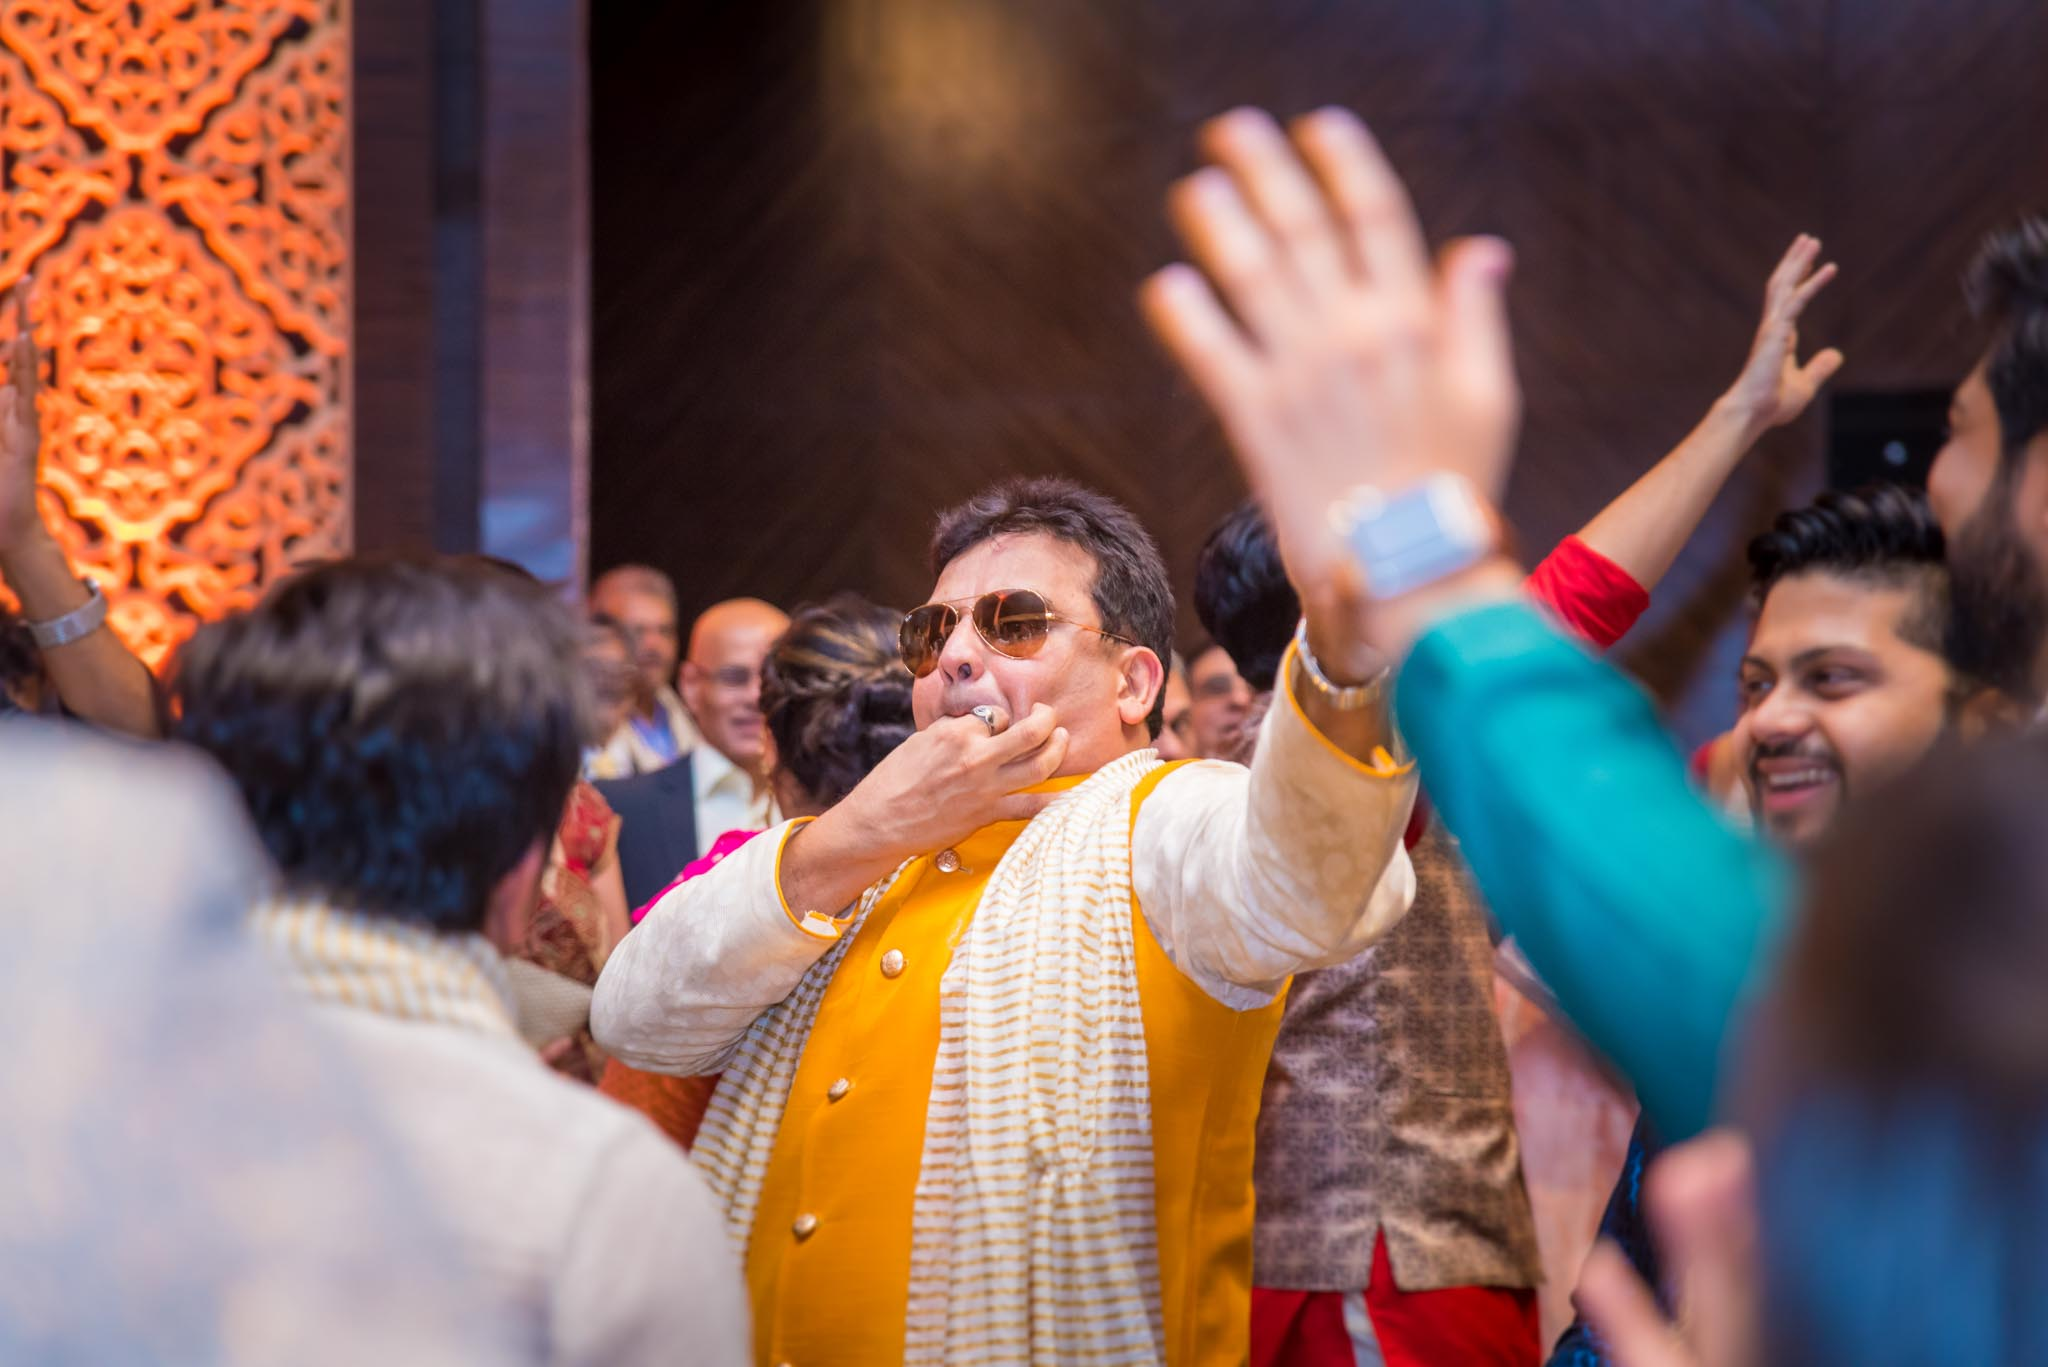 StRegis-Palladium-Mumbai-Candid-Wedding-Photography-25